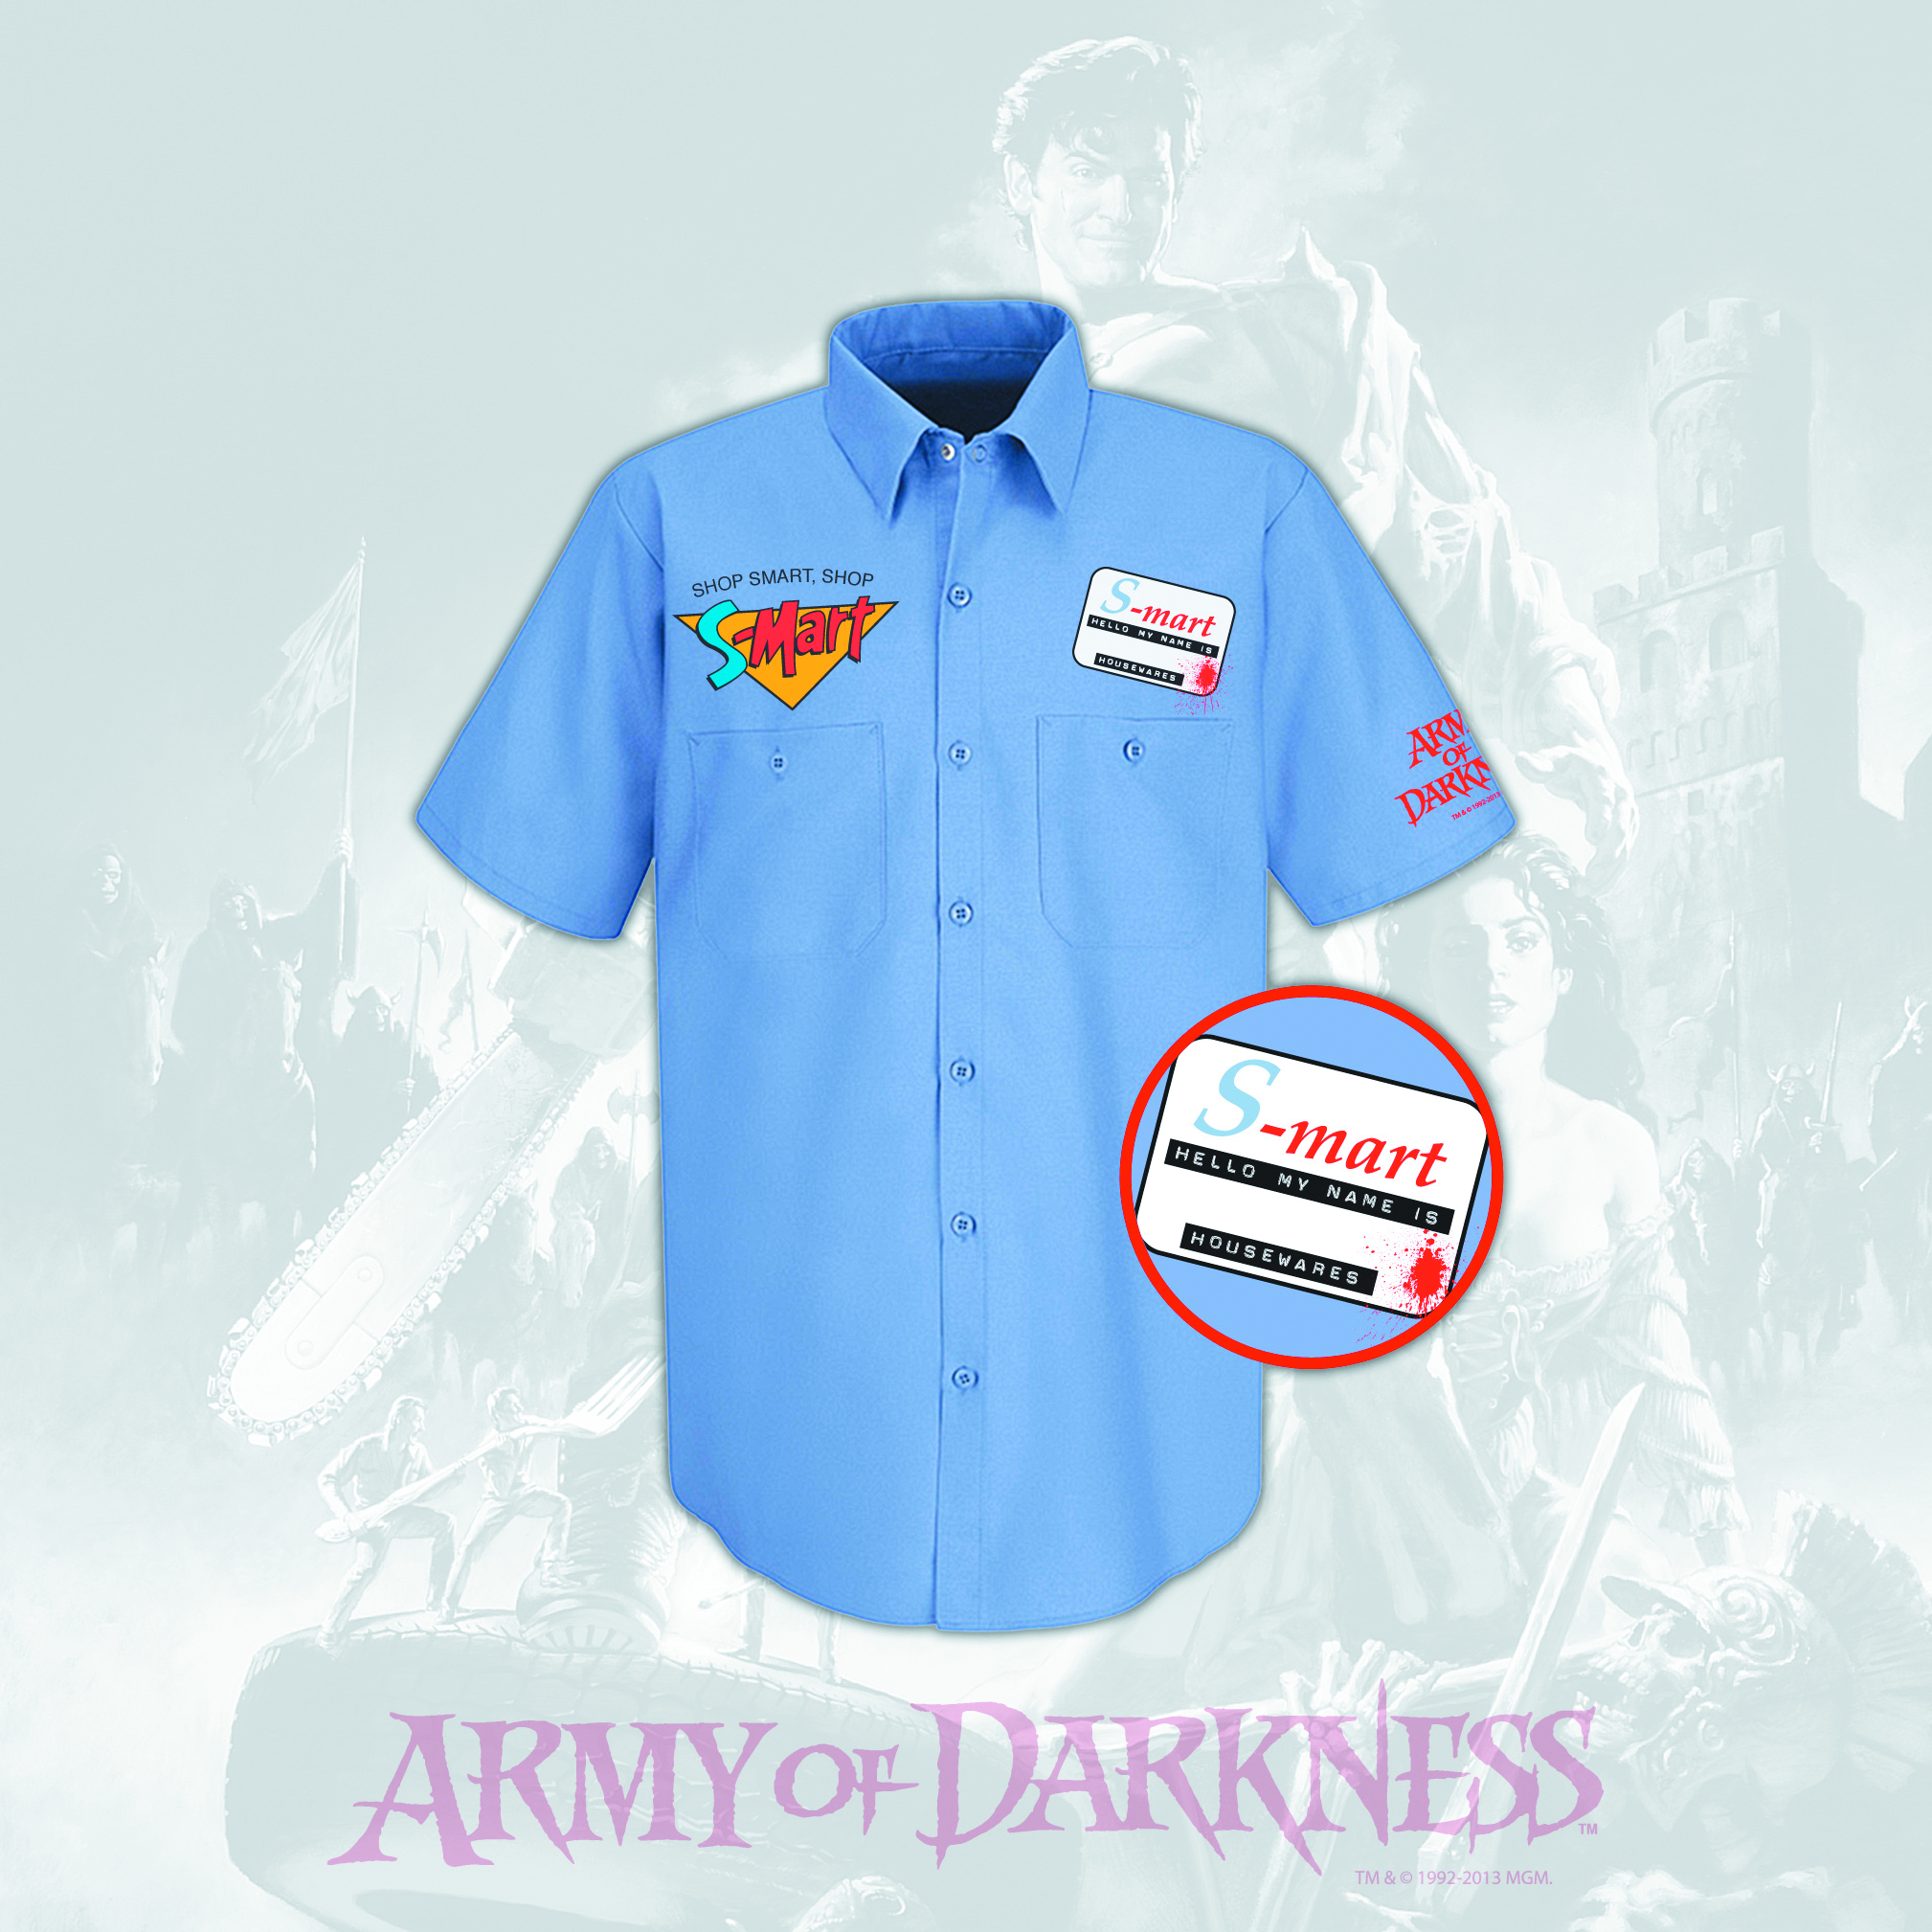 ARMY OF DARKNESS S-MART PX WORK SHIRT XXL